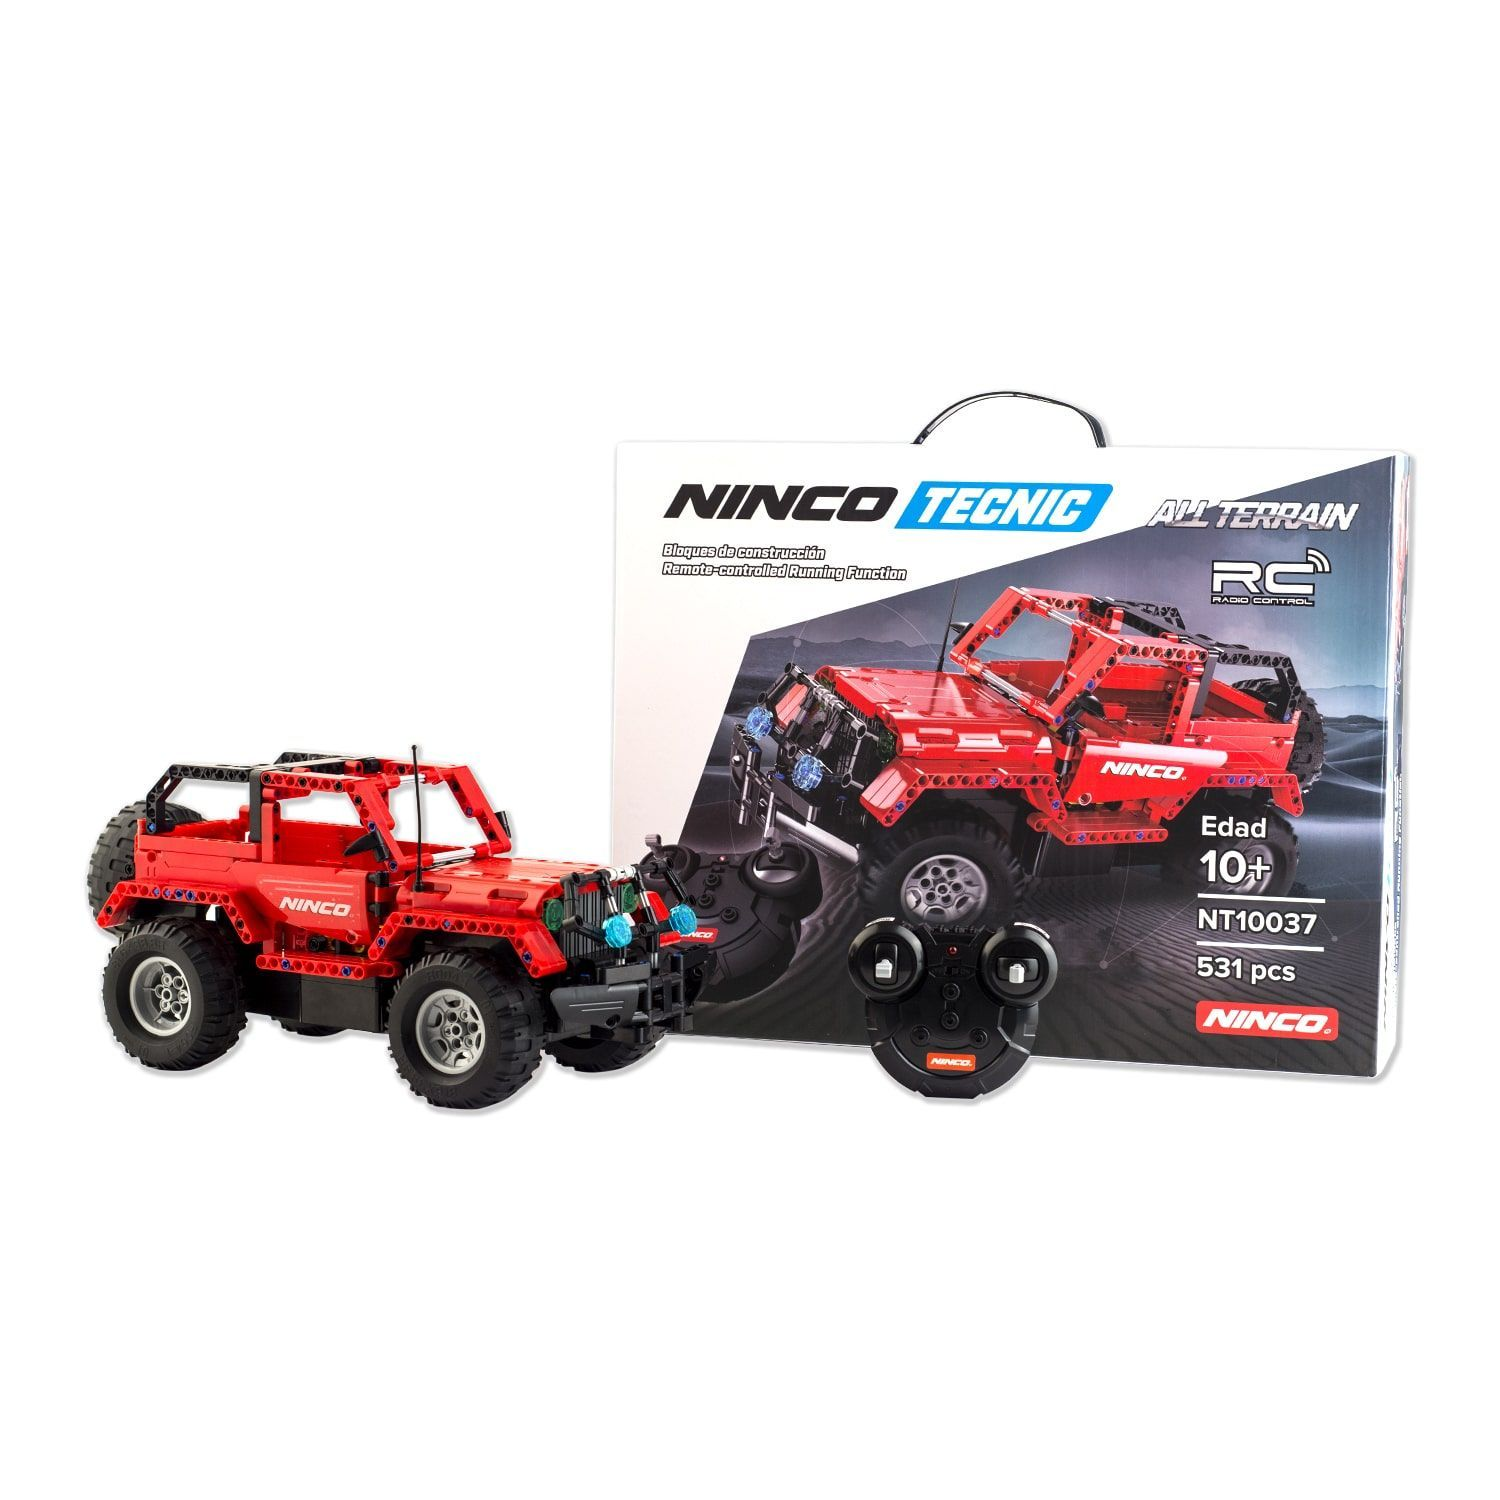 Jeep toys images  Ninco Tecnic All Terrain RC Jeep  Products  Pinterest  Sports